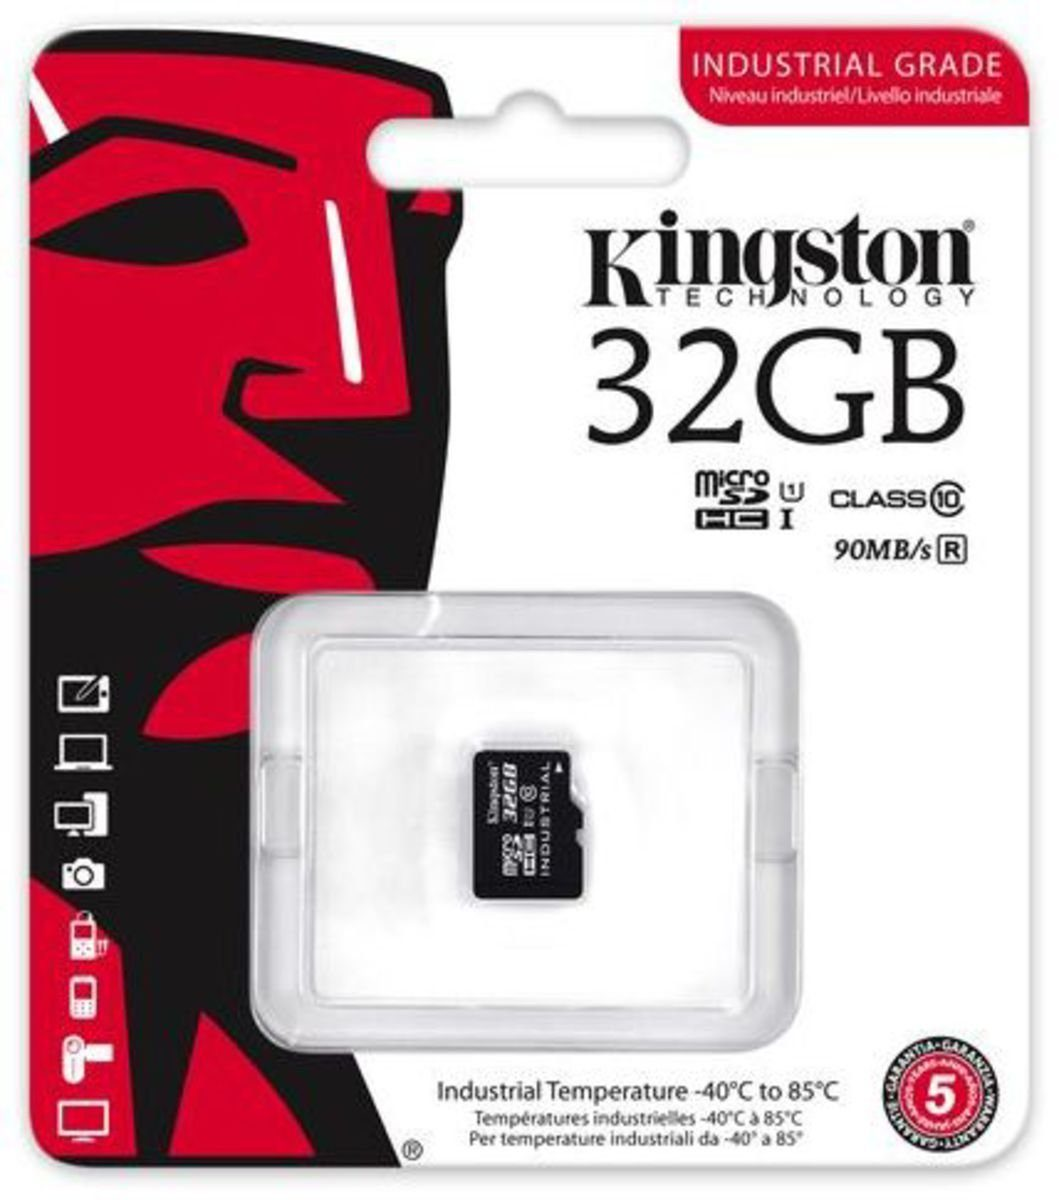 Kingston Speicherkarte »microSDHC Industrial Temp UHS-1 ohne Adapter, 32GB«